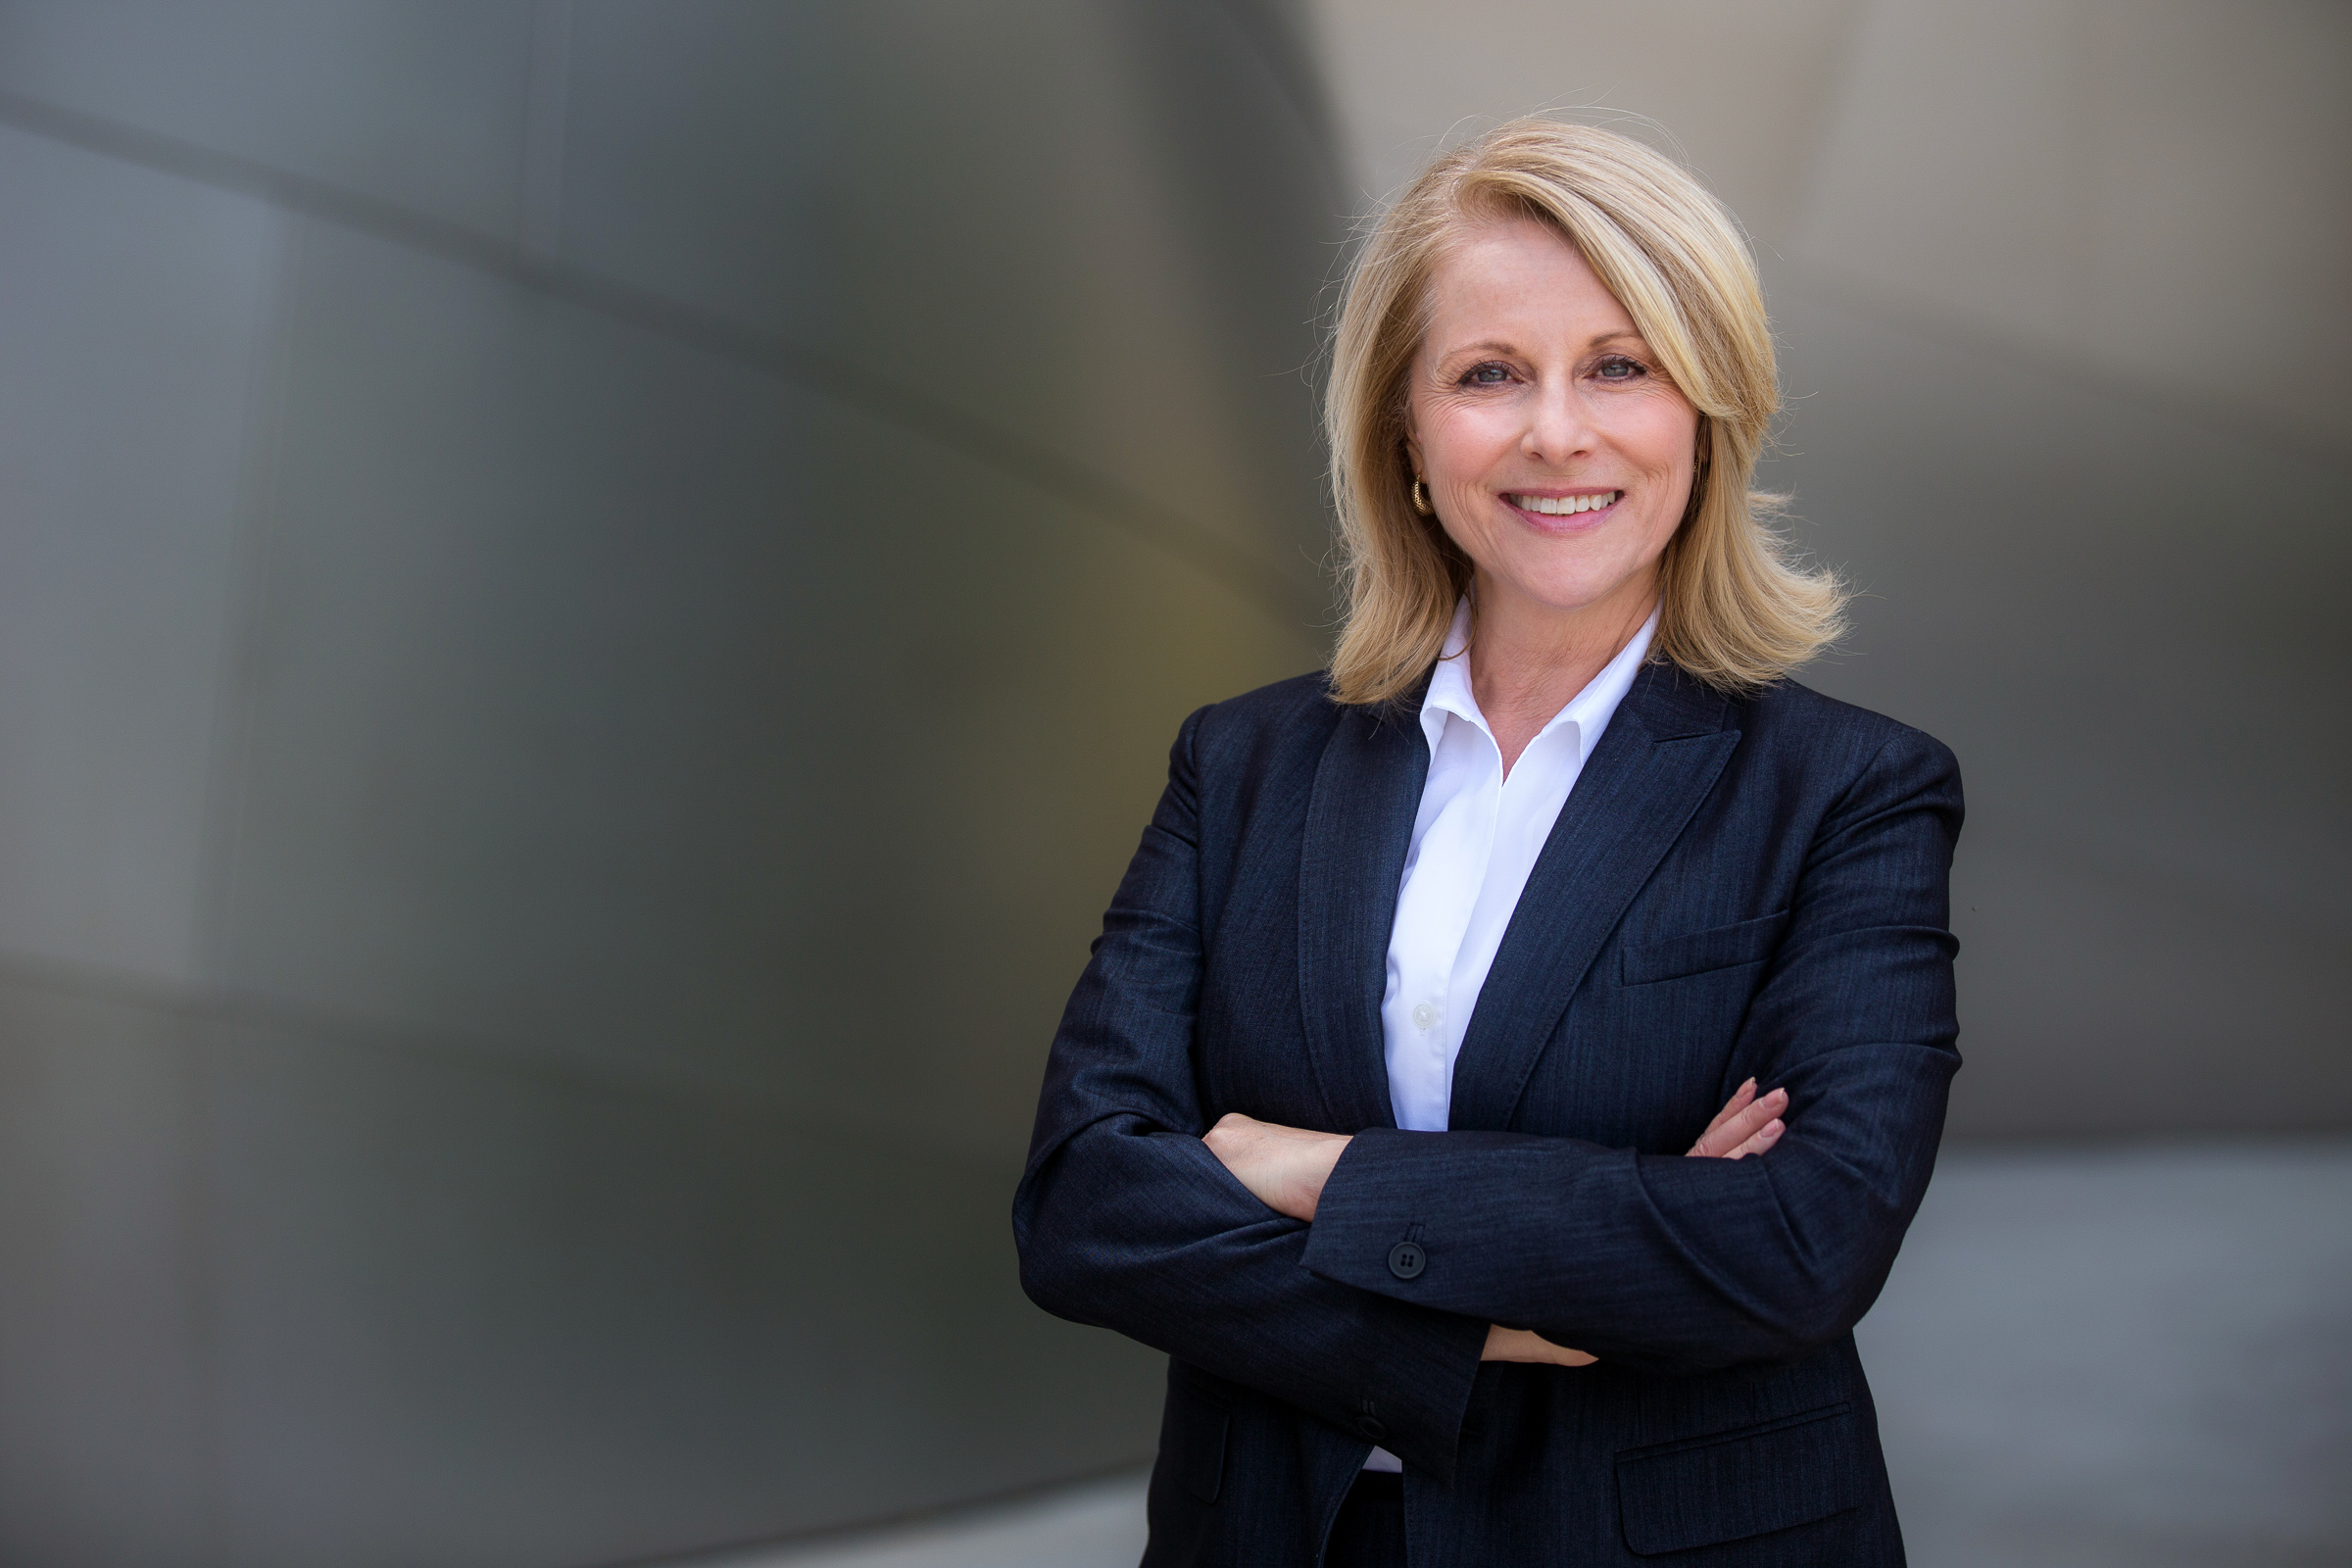 Pretty older business woman wearing blazer over white dress shirt, successful confidence with arms crossed and smiling